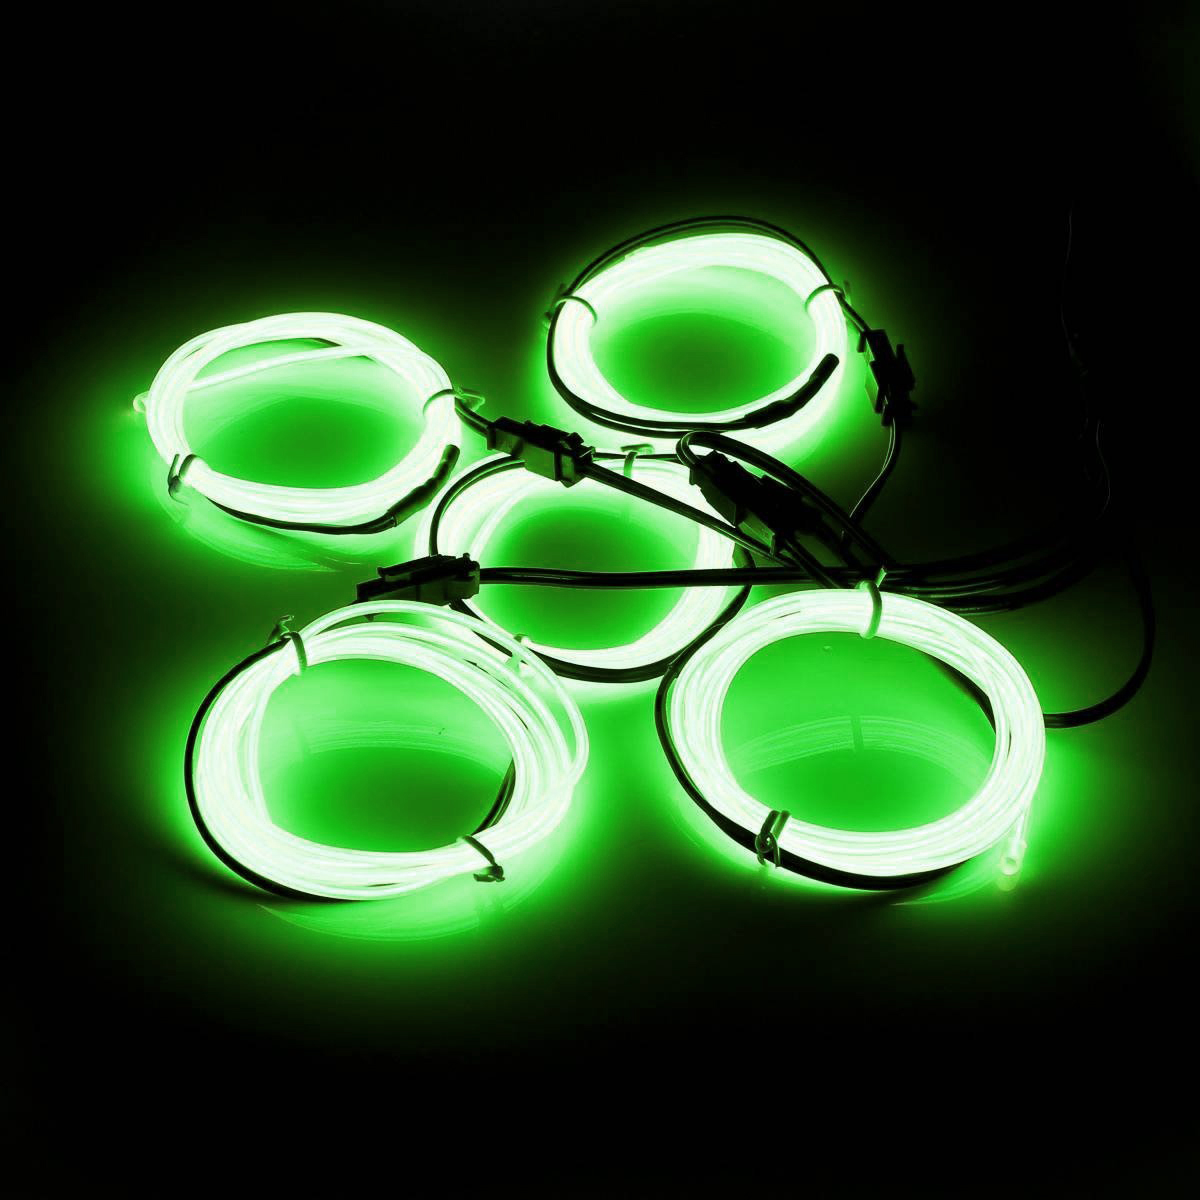 5x 1m EL Wire EL Cable Neon Lighting Luminous Cord for Christmas Party Rave Parties Halloween Costume + Battery Box 6 Color